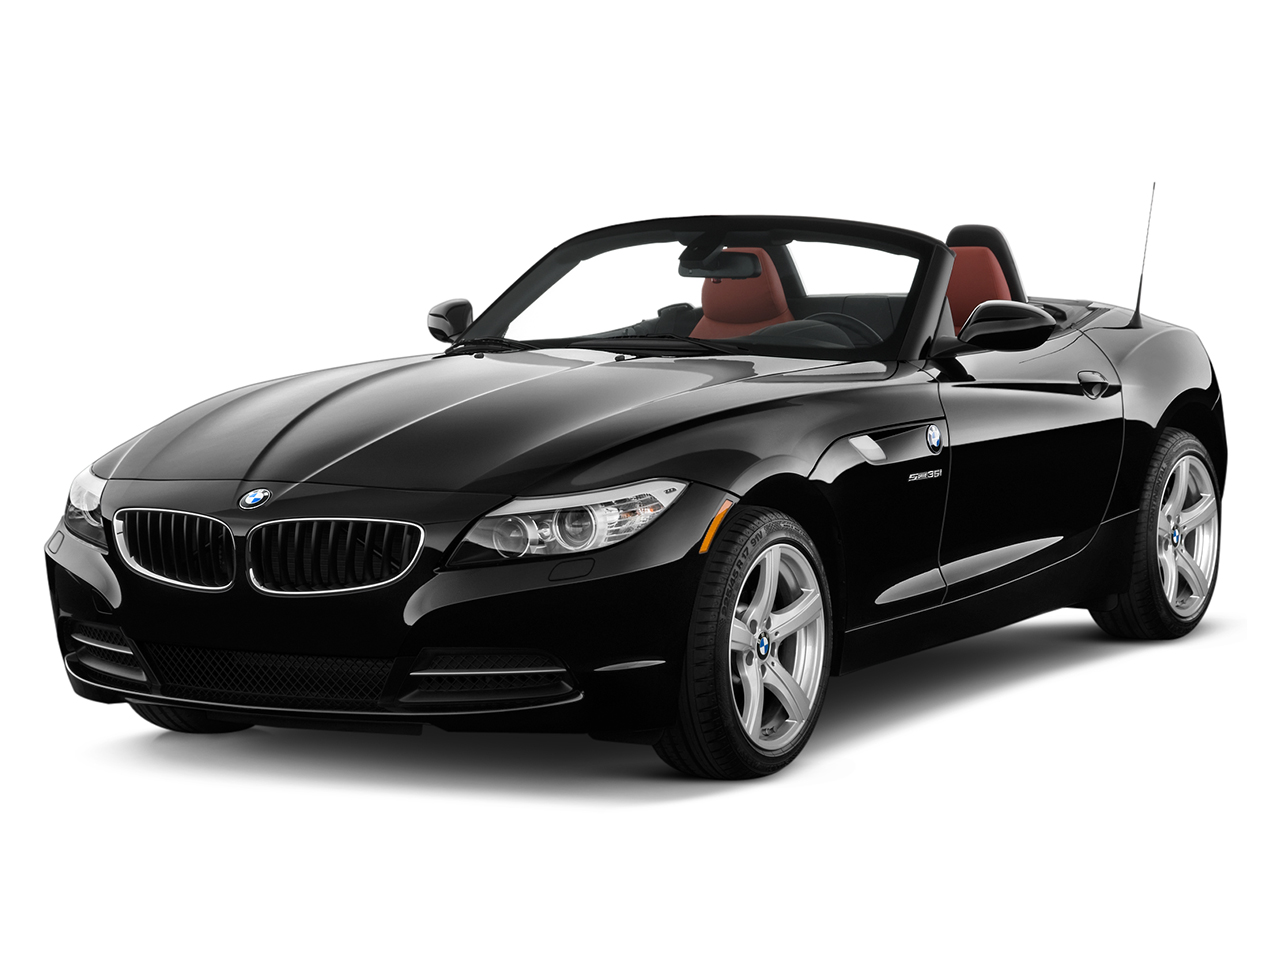 2018 bmw z4 roadster prices in saudi arabia gulf specs reviews for riyadh jeddah dammam and. Black Bedroom Furniture Sets. Home Design Ideas